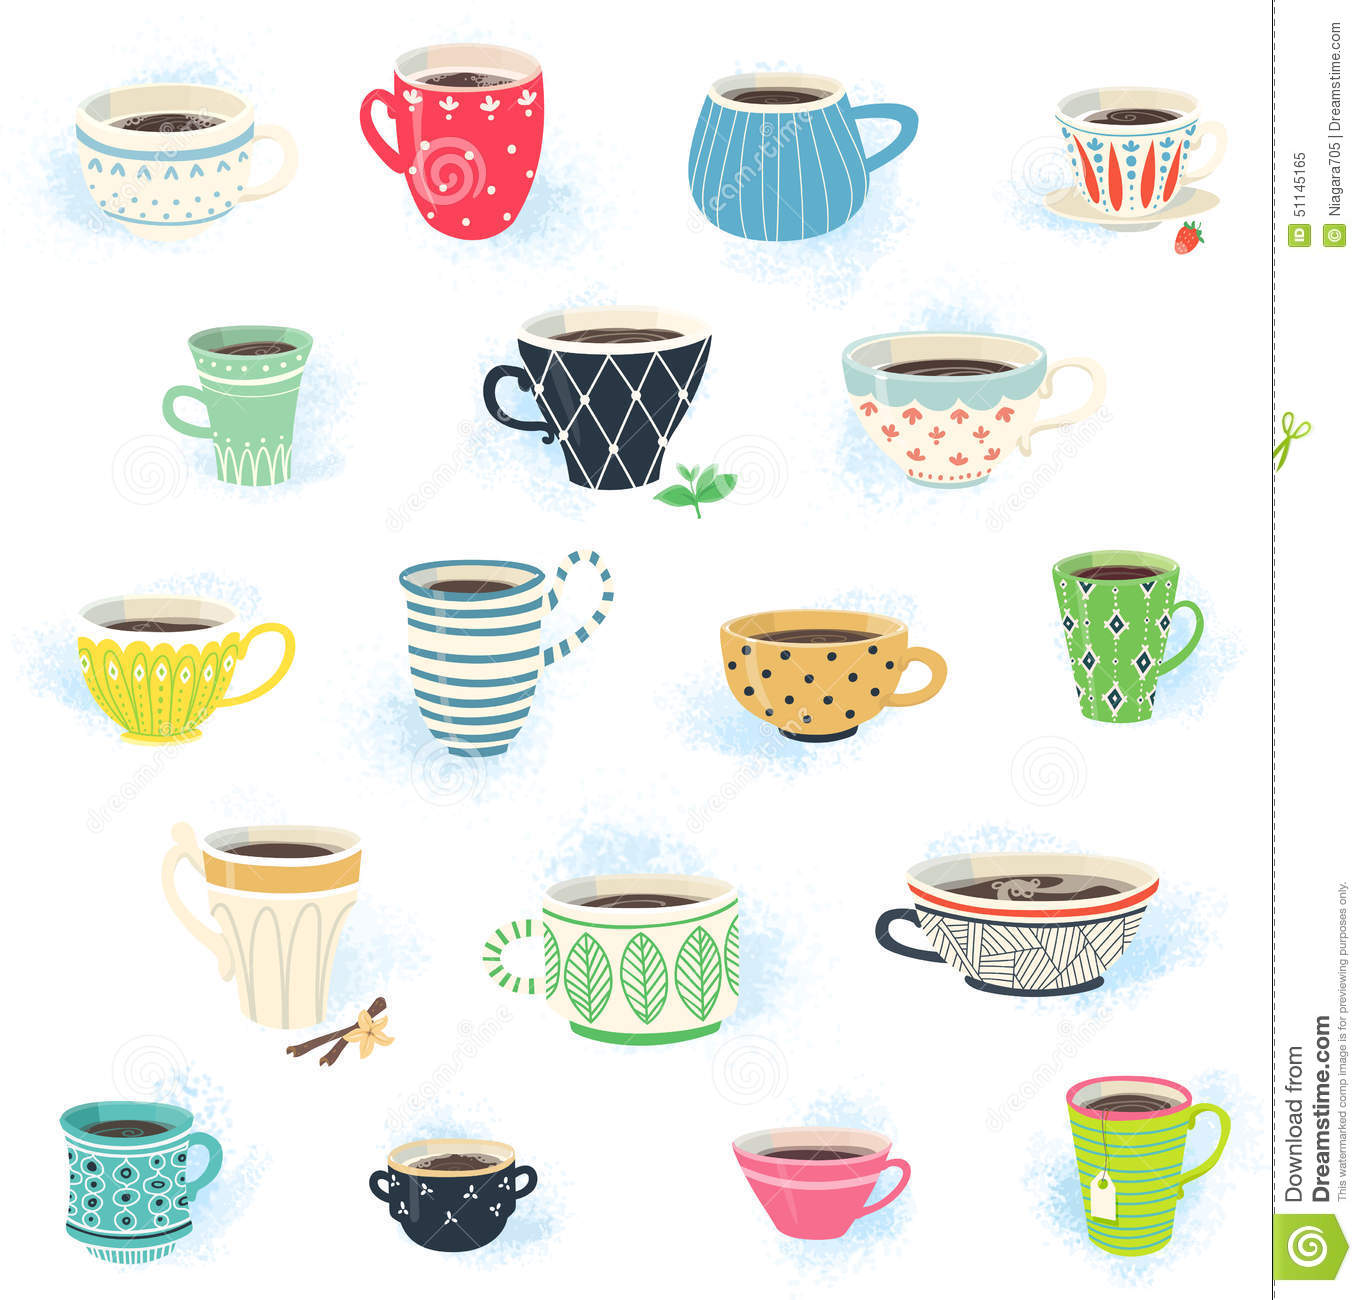 Vintage Clip Art Tea Cups